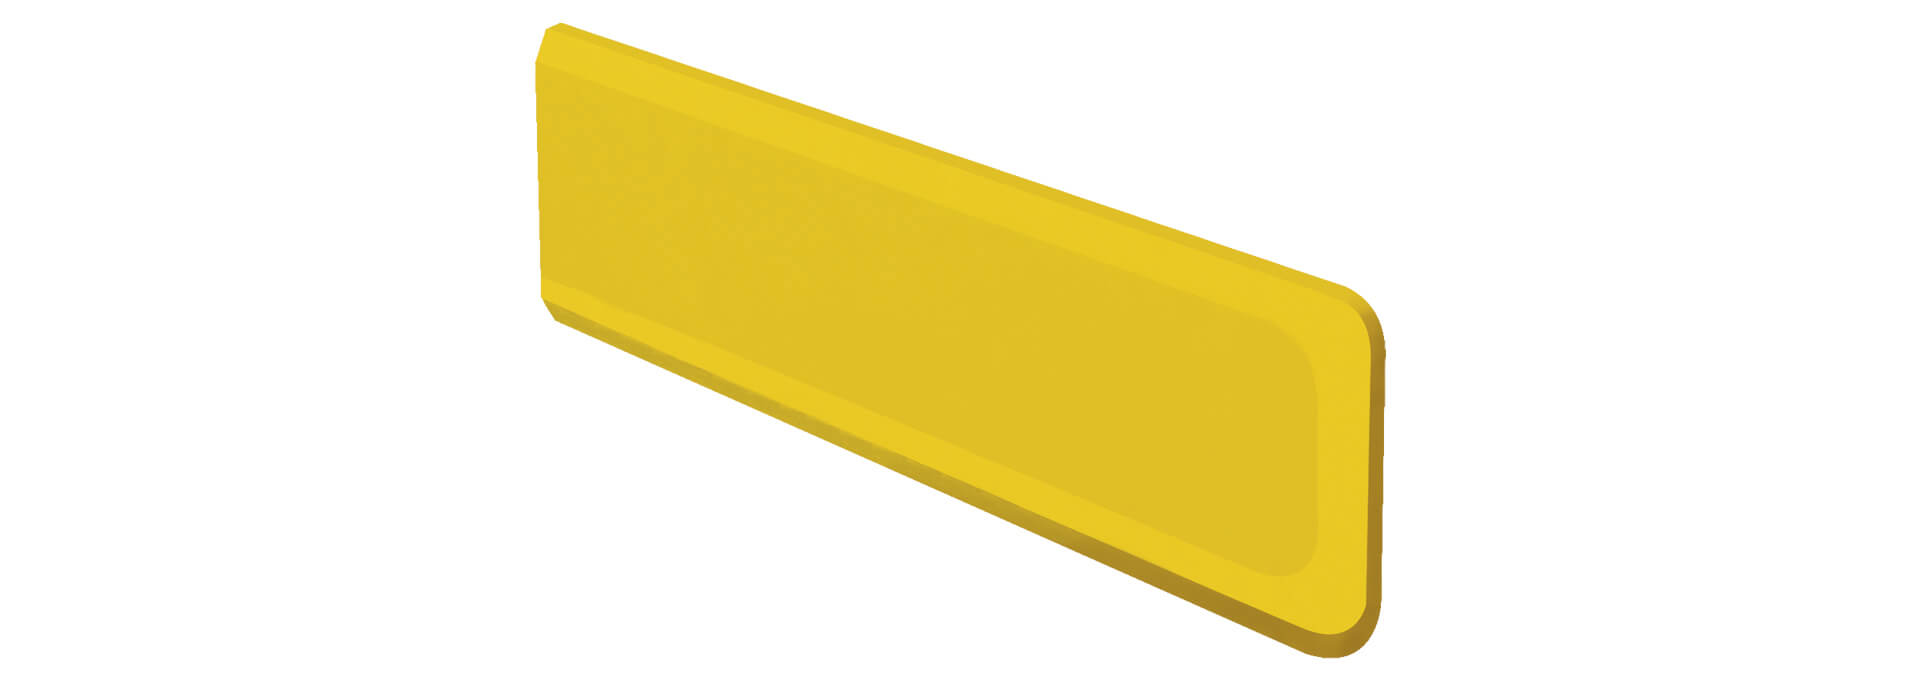 Hygienic Panel and Wall Protector DK200-000001023